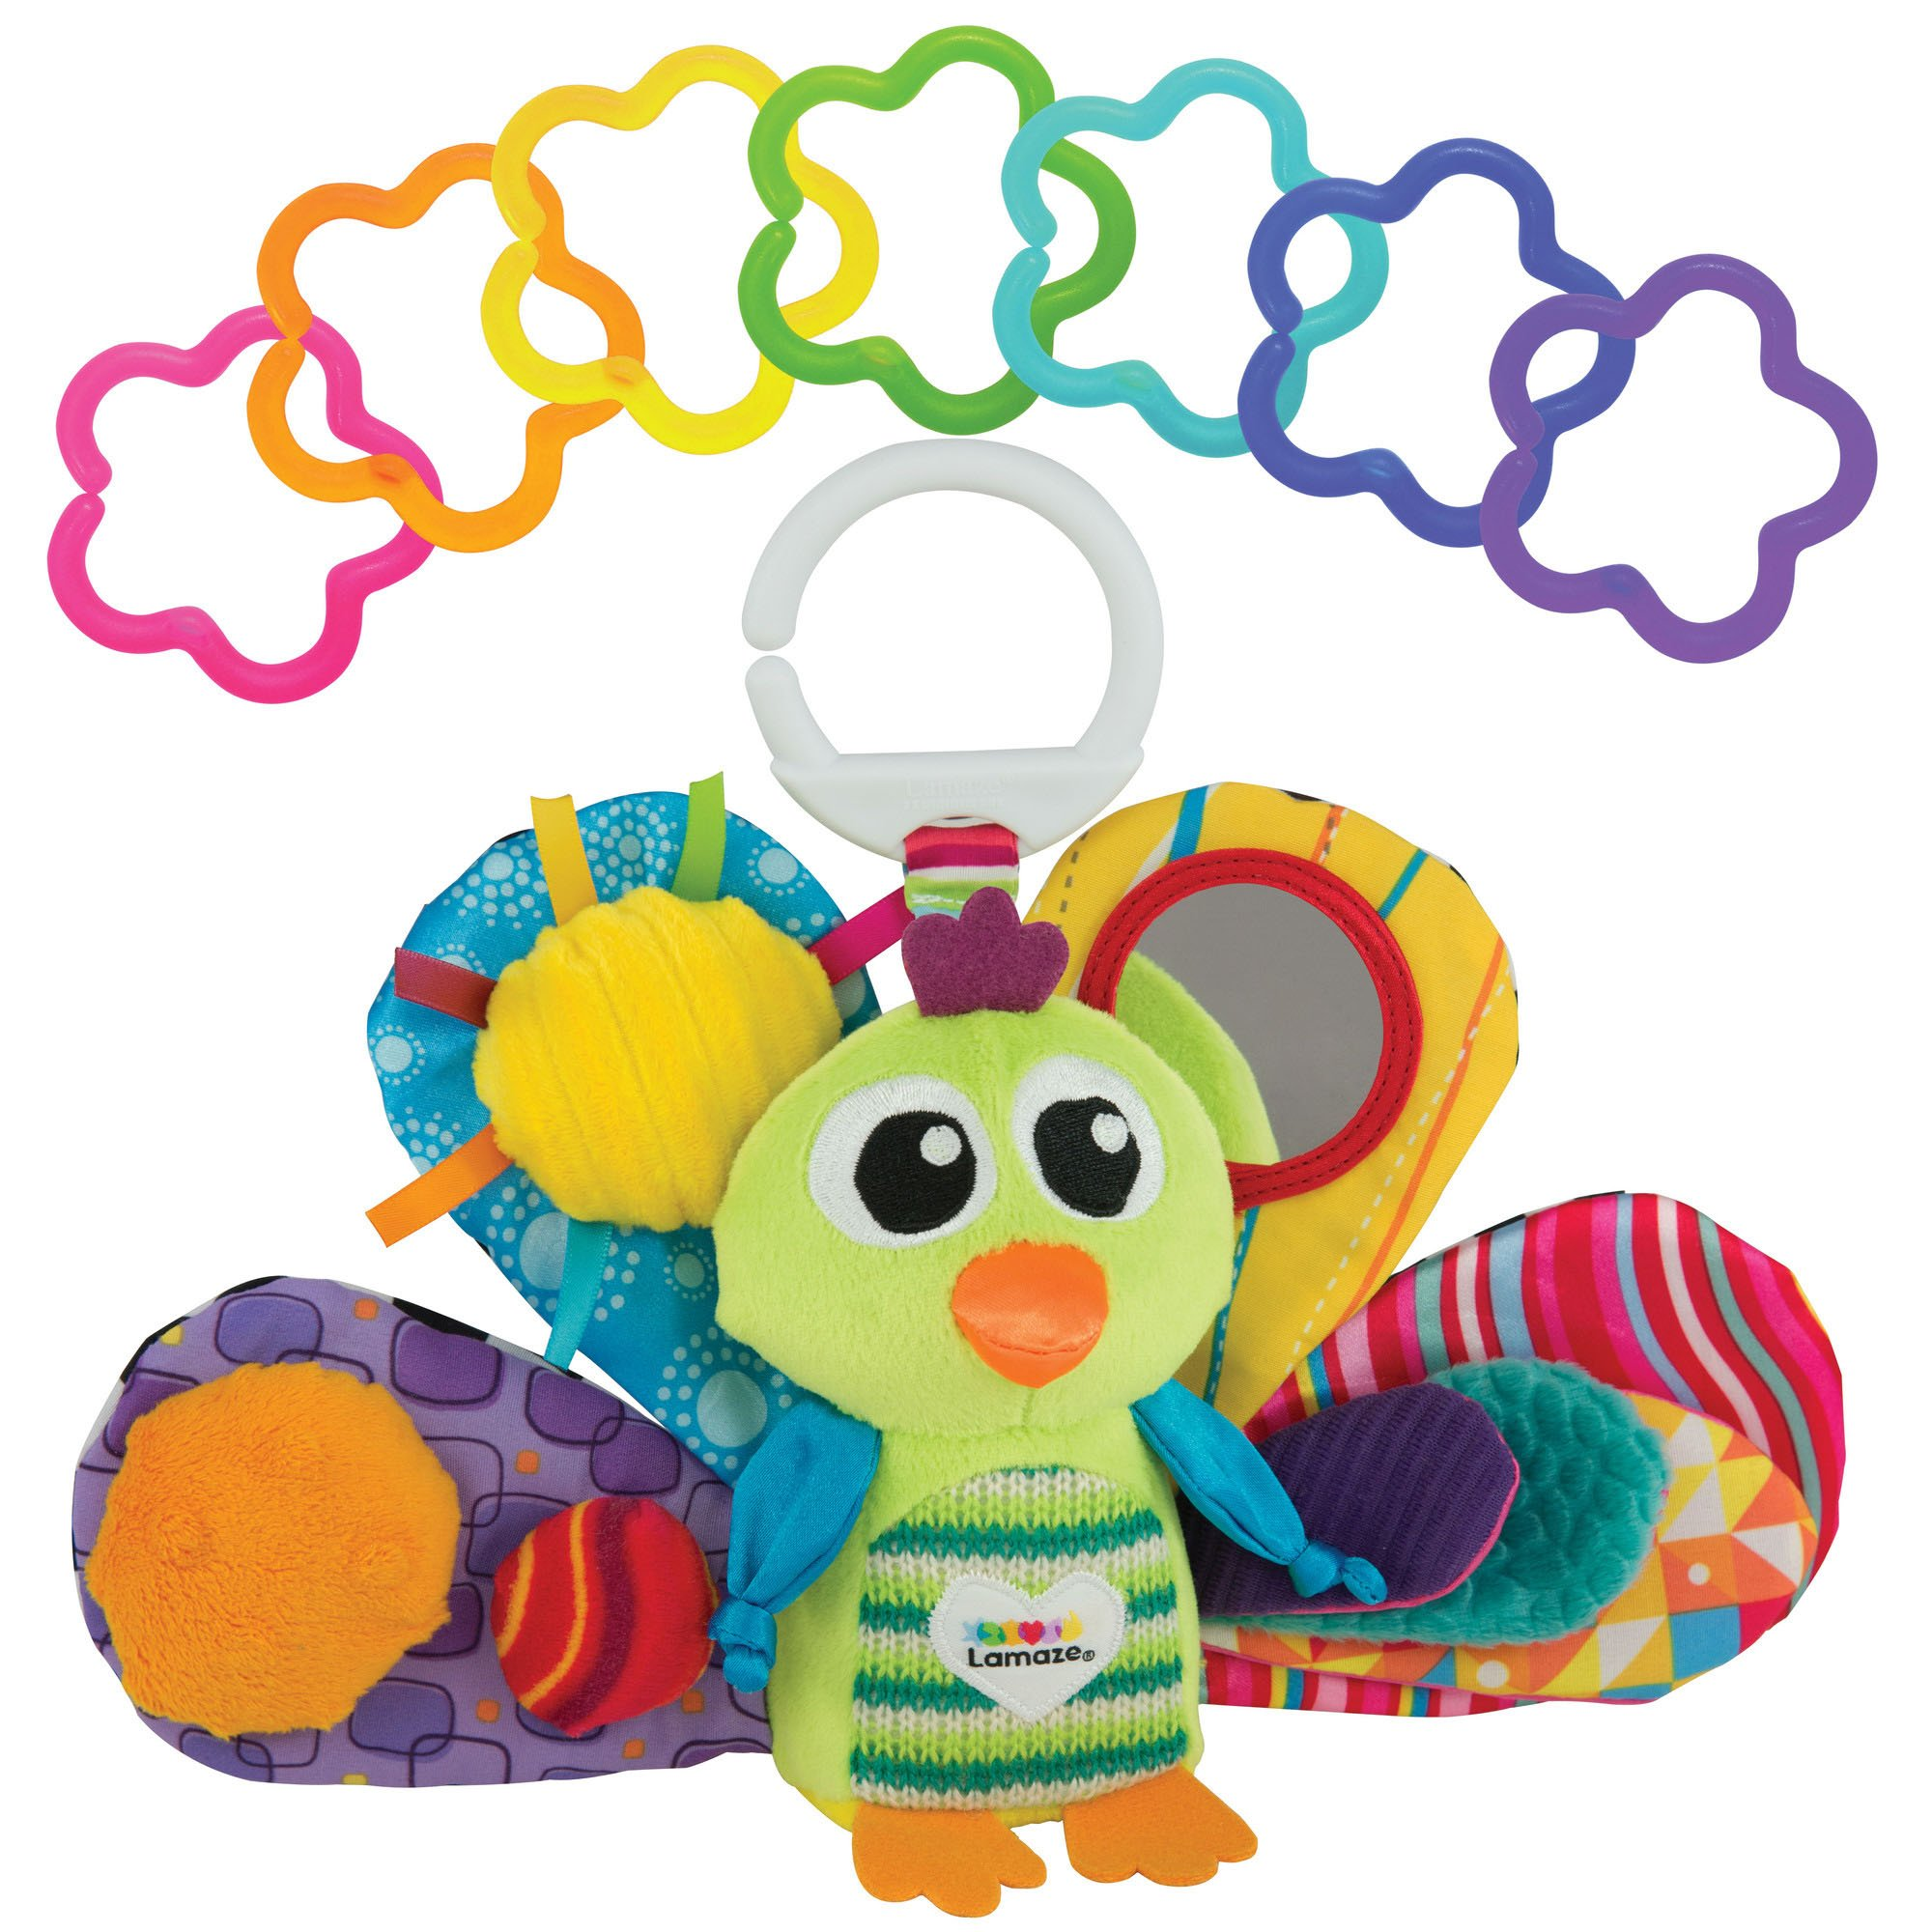 LAMAZE - Jacque The Peacock Gift Set, Support Baby's Development with Bright Colors, Fun Textures, and a Self-Discovery Mirror, Clips to Carriers, Strollers and Diaper Bags, 0 Months and Older